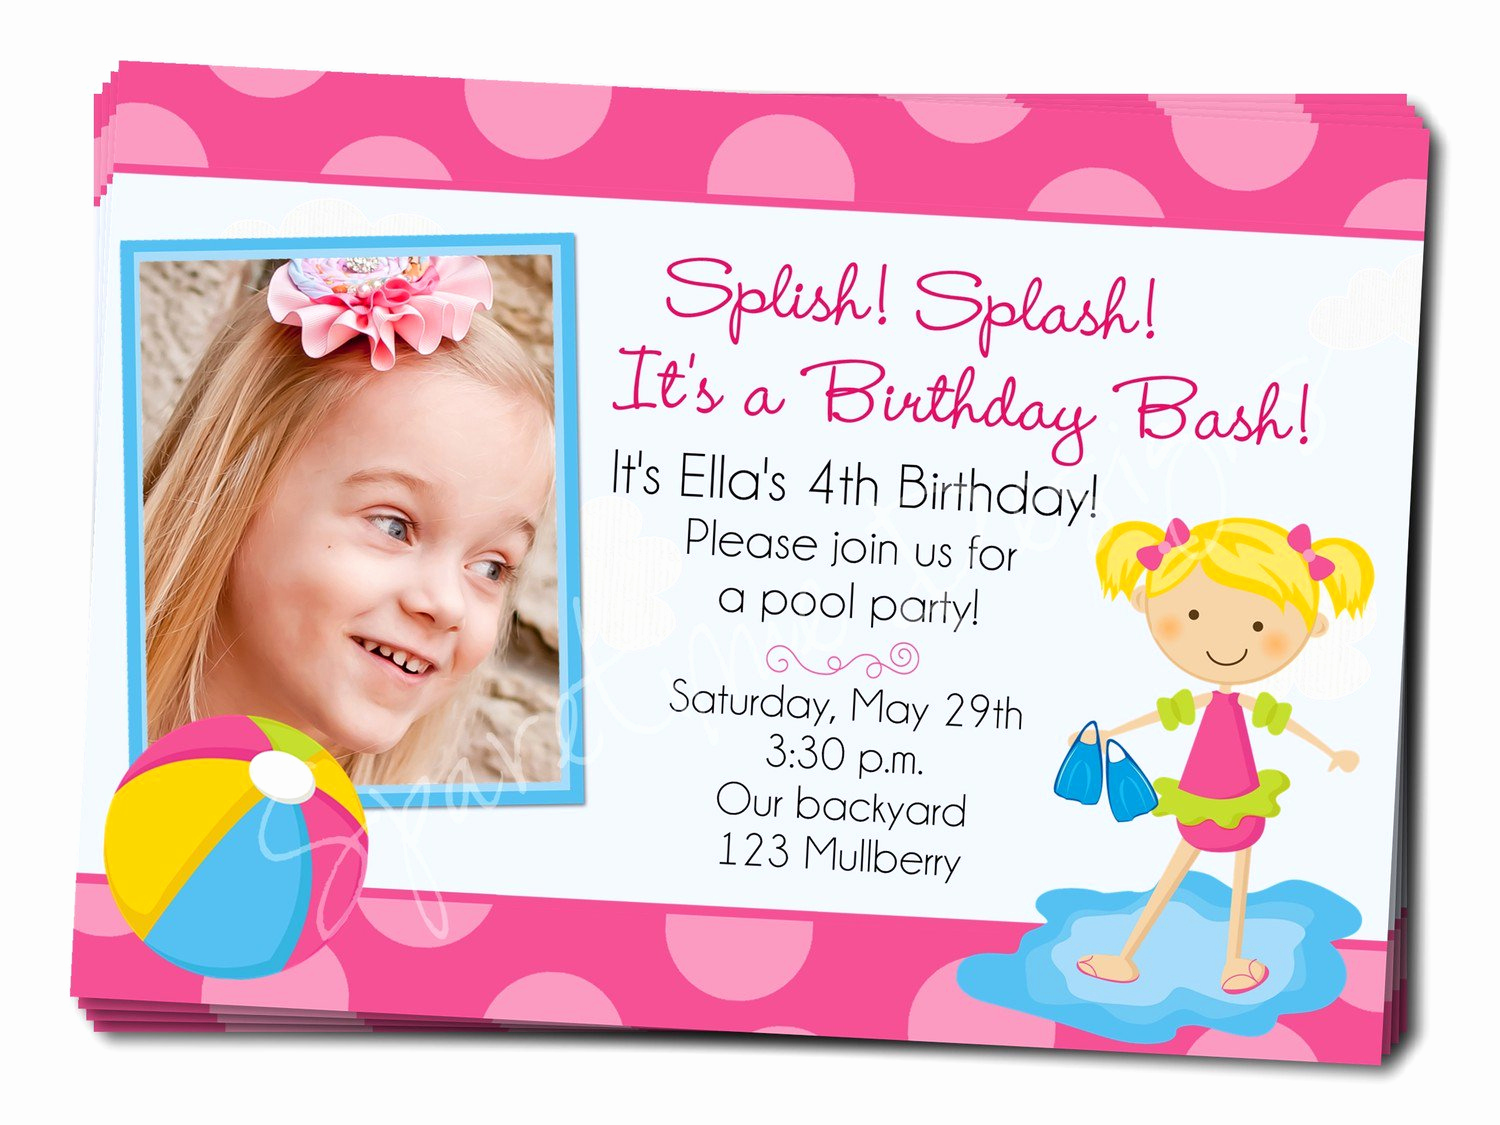 Birthday Pool Party Invitation Wording Elegant Birthday Pool Party Invitation Wording